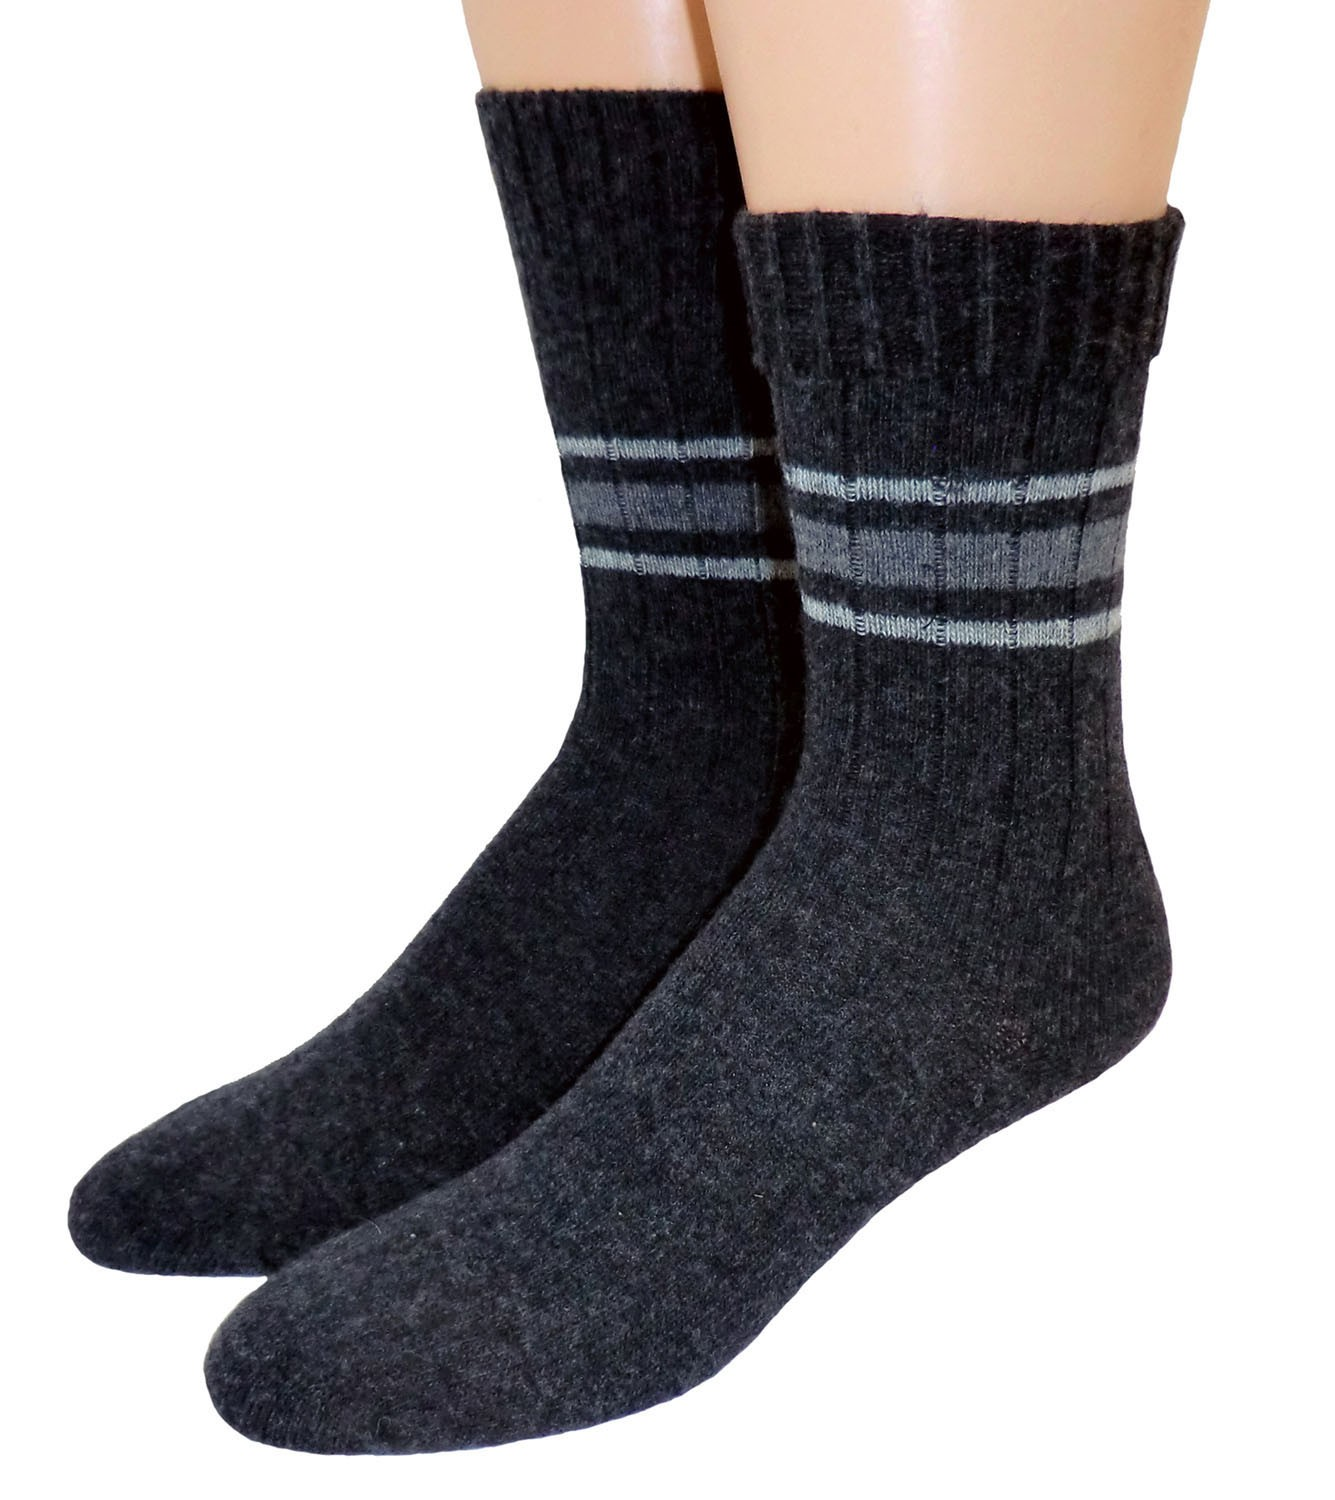 damen unisex socken lammwolle strumpfwaren damen damen sneaker socken homesocks. Black Bedroom Furniture Sets. Home Design Ideas